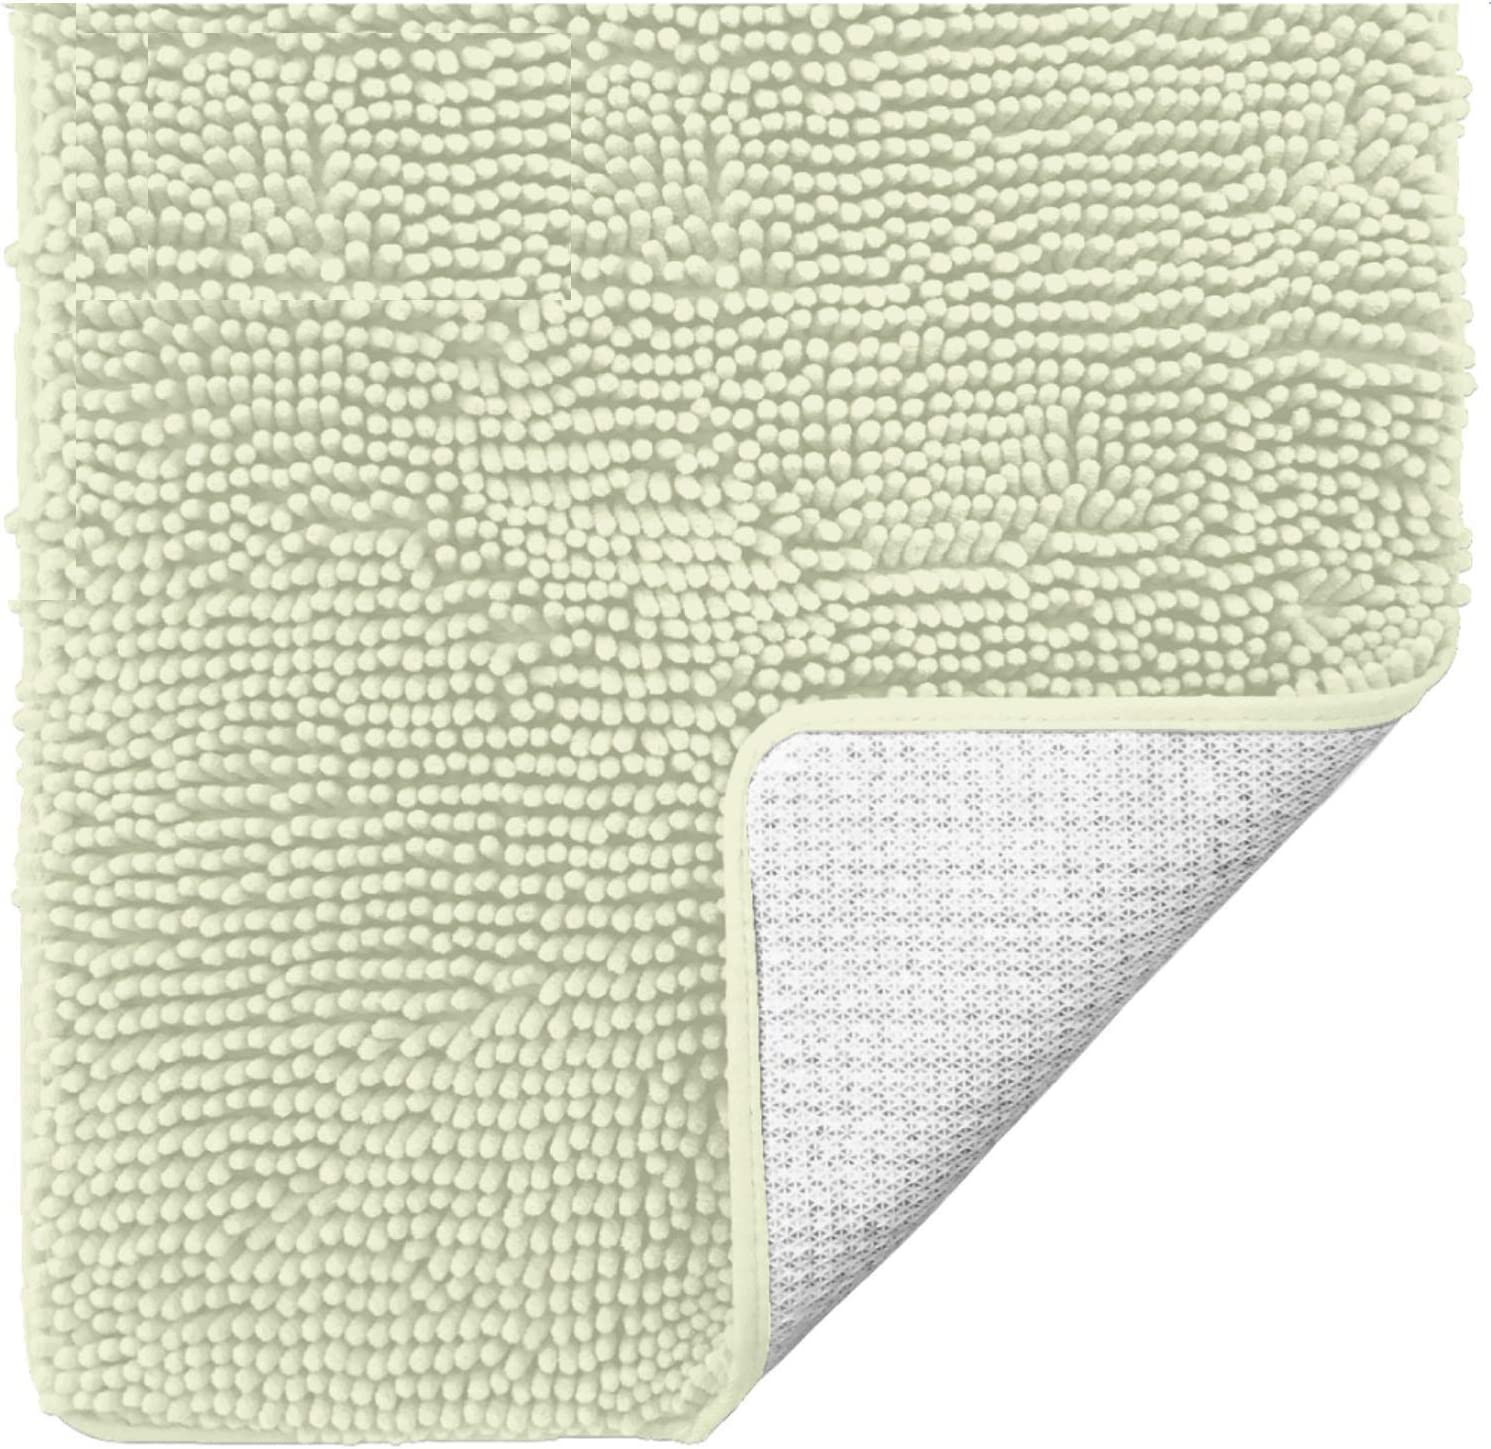 Gorilla Grip Original Luxury Chenille Bathroom Rug Mat, 30x20, Extra Soft and Absorbent Shaggy Rugs, Machine Wash Dry, Perfect Plush Carpet Mats for Tub, Shower, and Bath Room, Pale Green